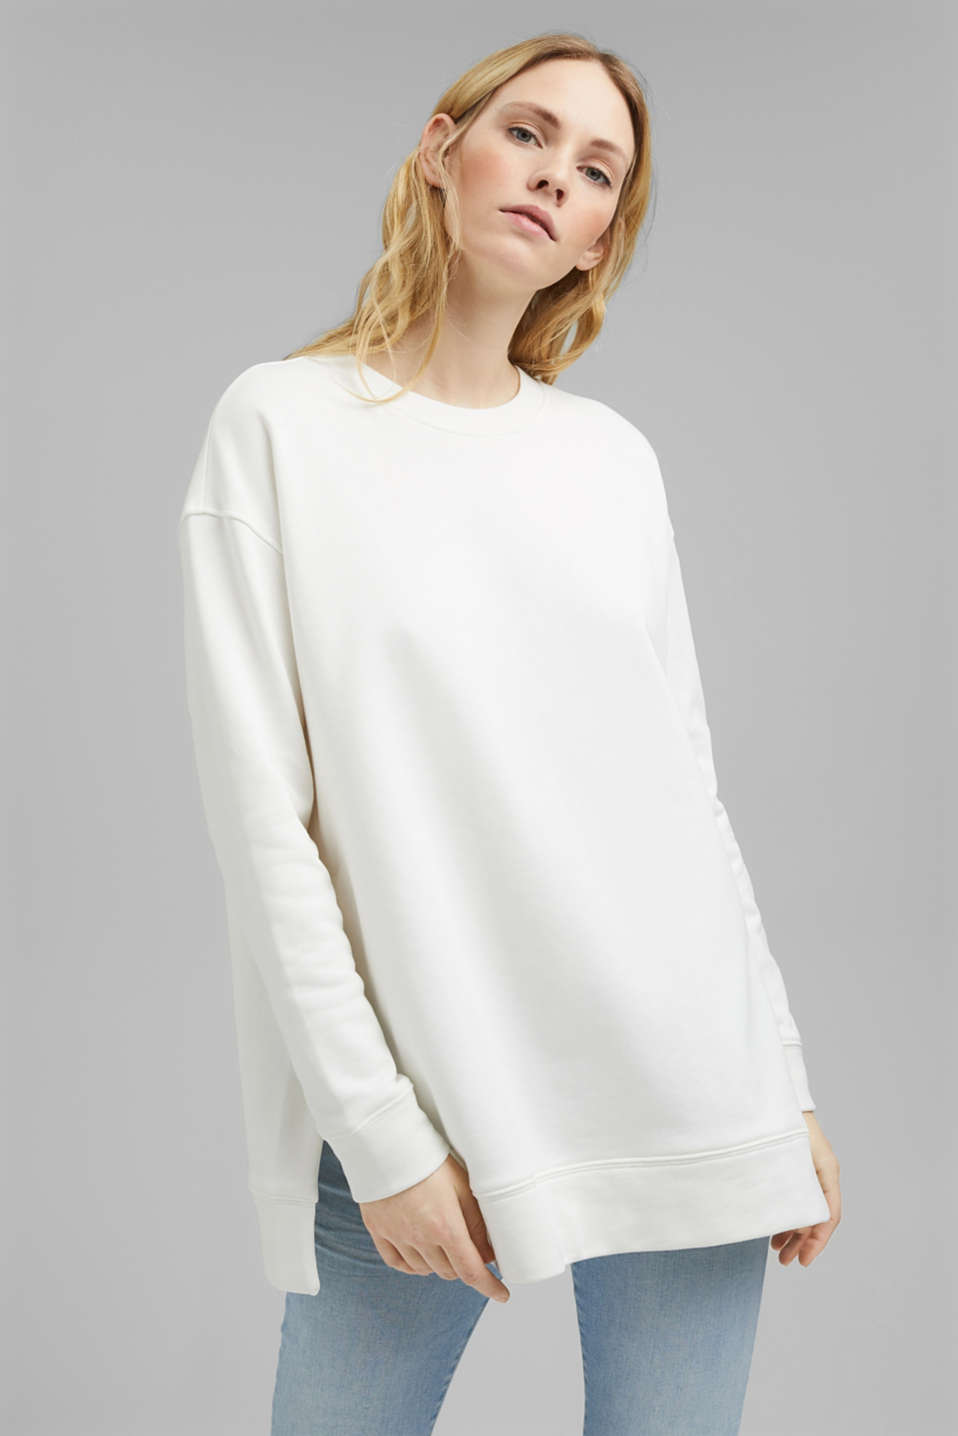 Esprit - fashion sweatshirt